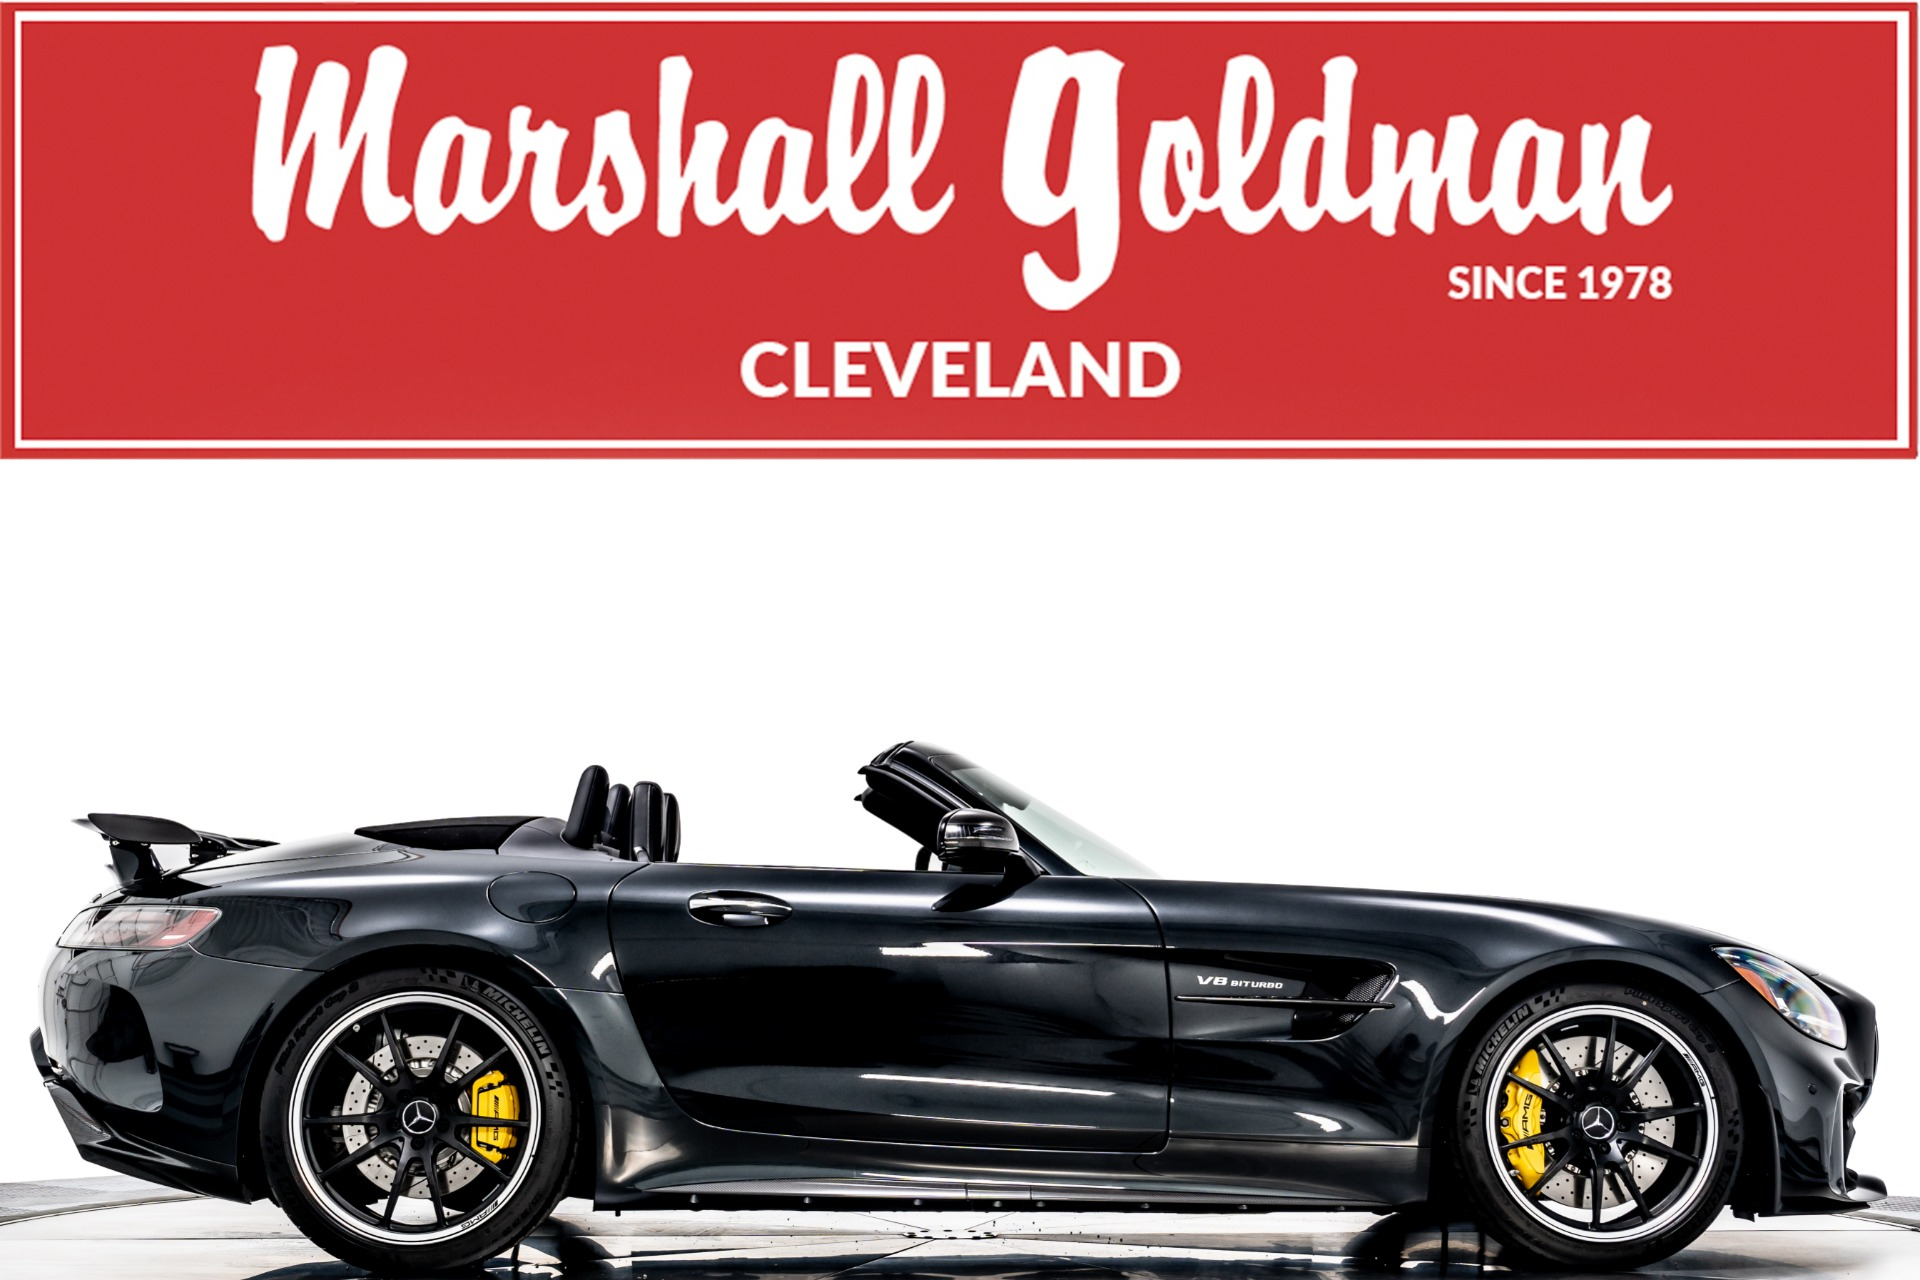 Used 2020 Mercedes Benz Amg Gt R Roadster For Sale Sold Marshall Goldman Beverly Hills Stock W21102